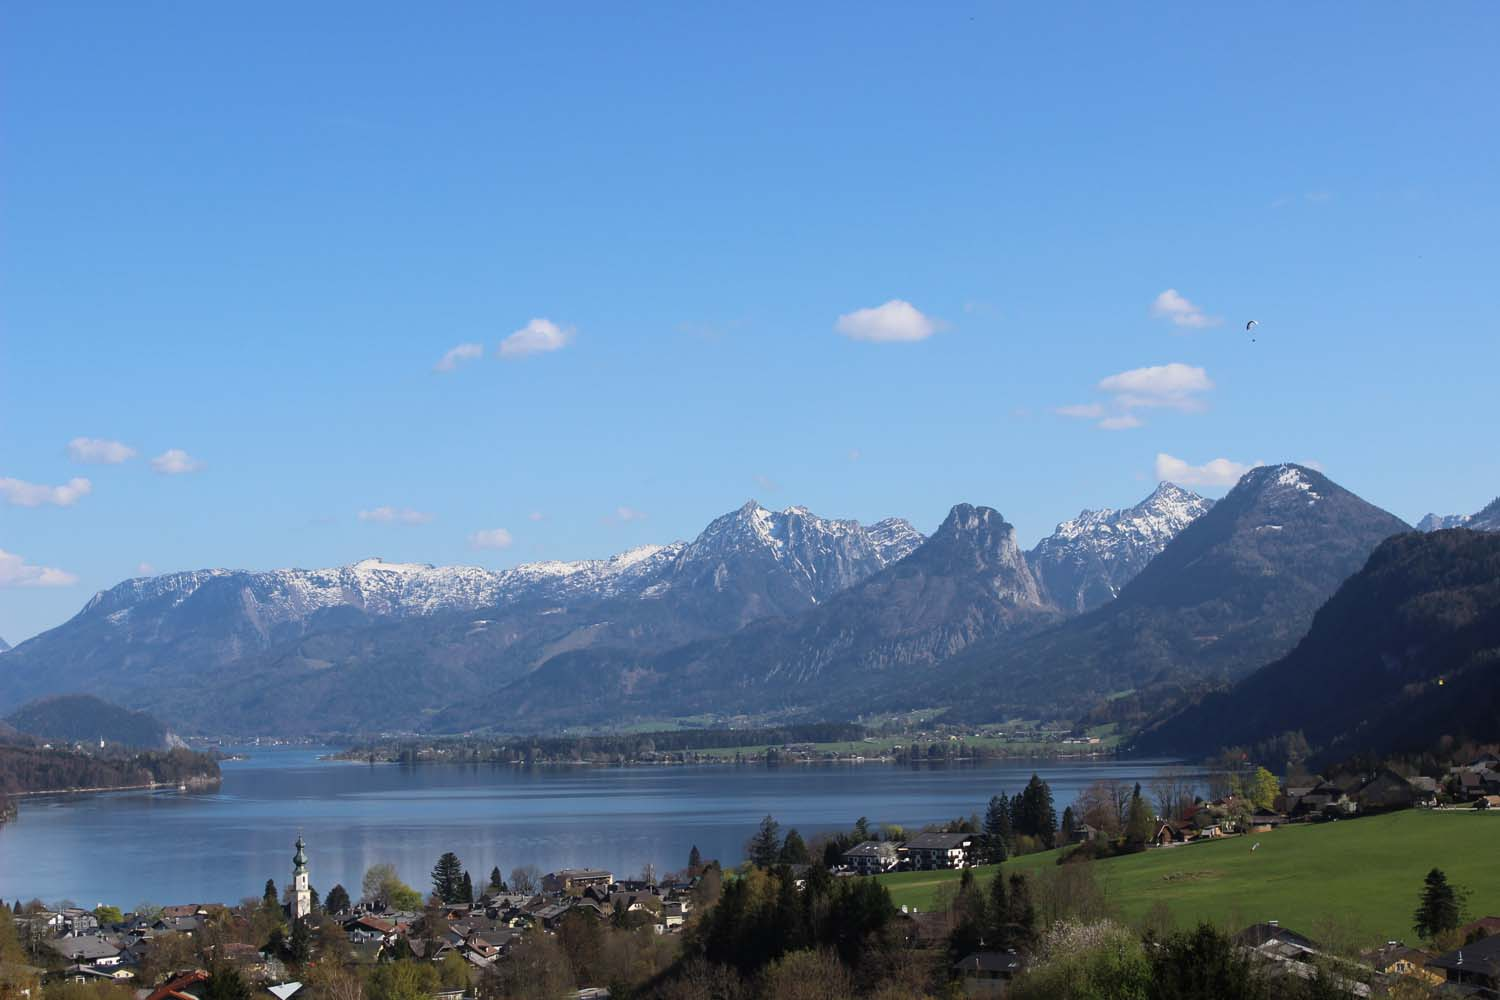 St. Gilgen and Lake Wolfgang, Austria  | Image:  Laura Messersmith